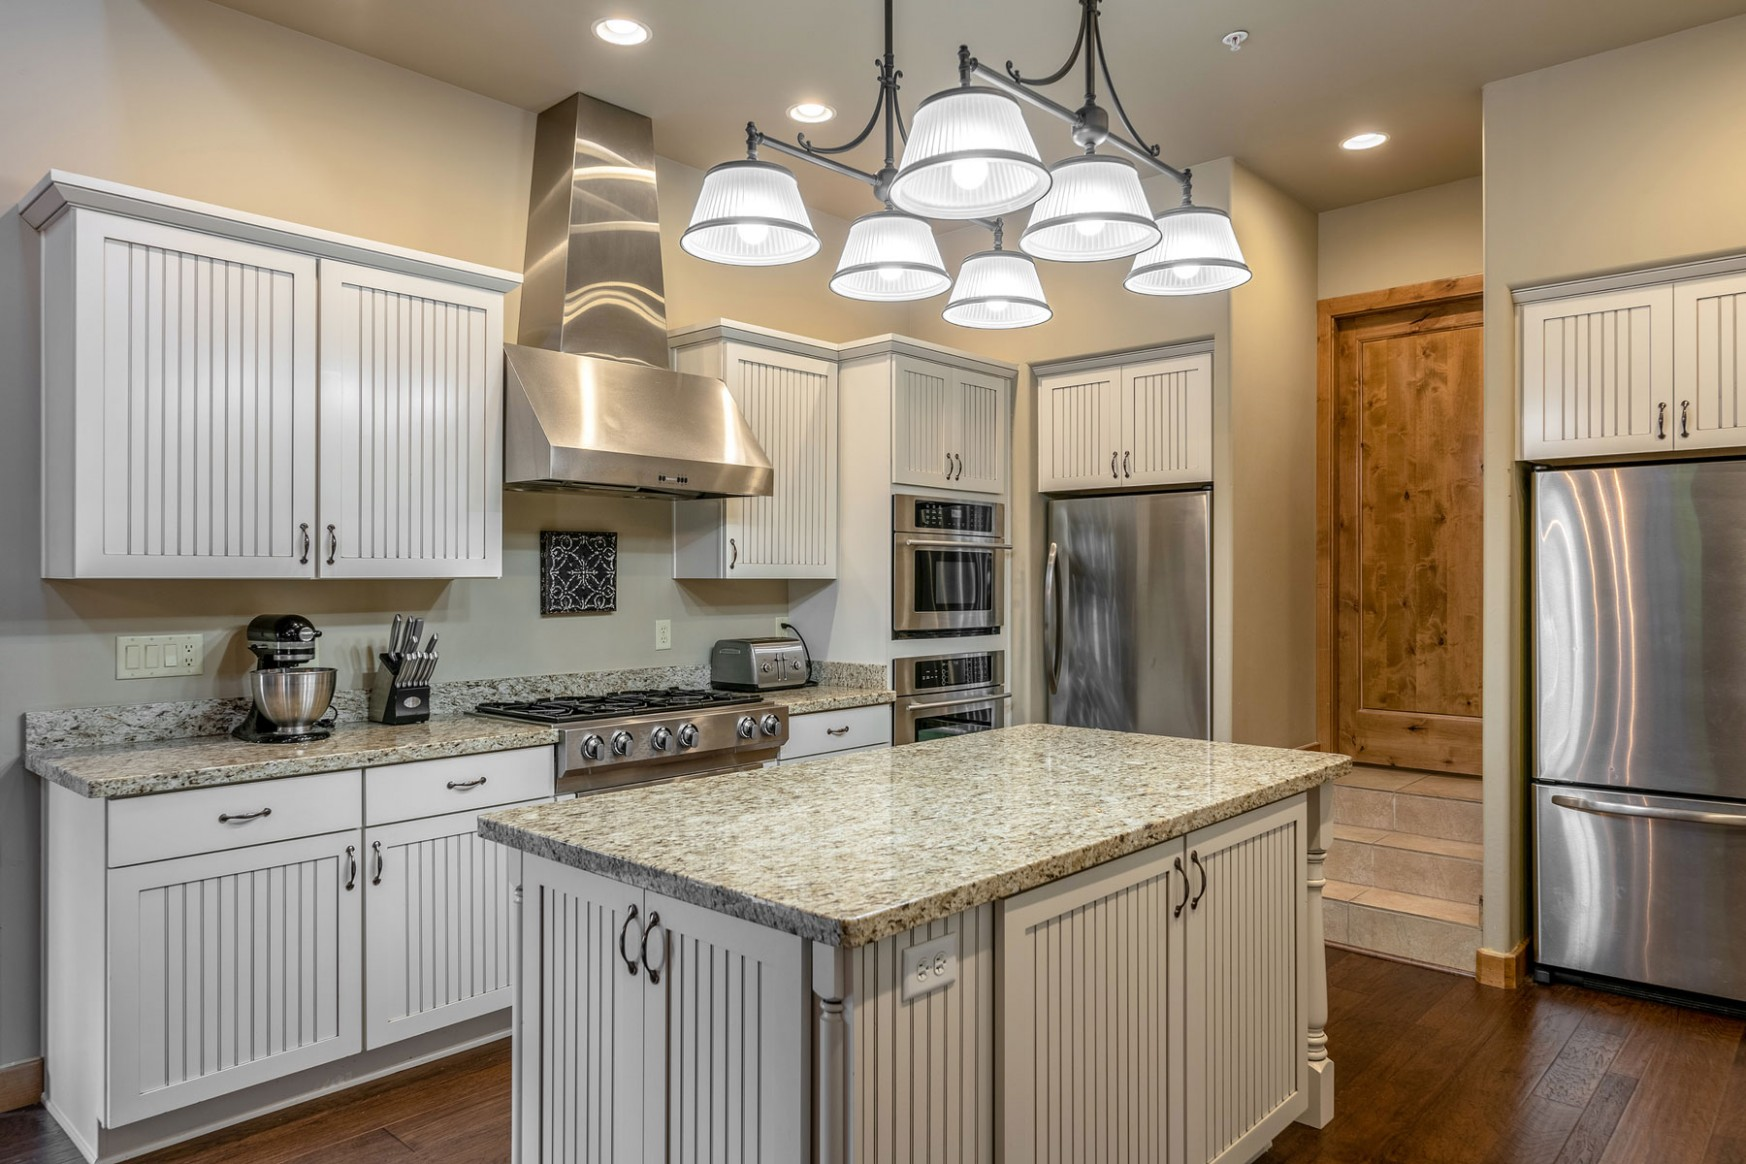 What to Know About Refinishing Kitchen Cabinets  Real Simple - Kitchen Cabinets Refinishing Services